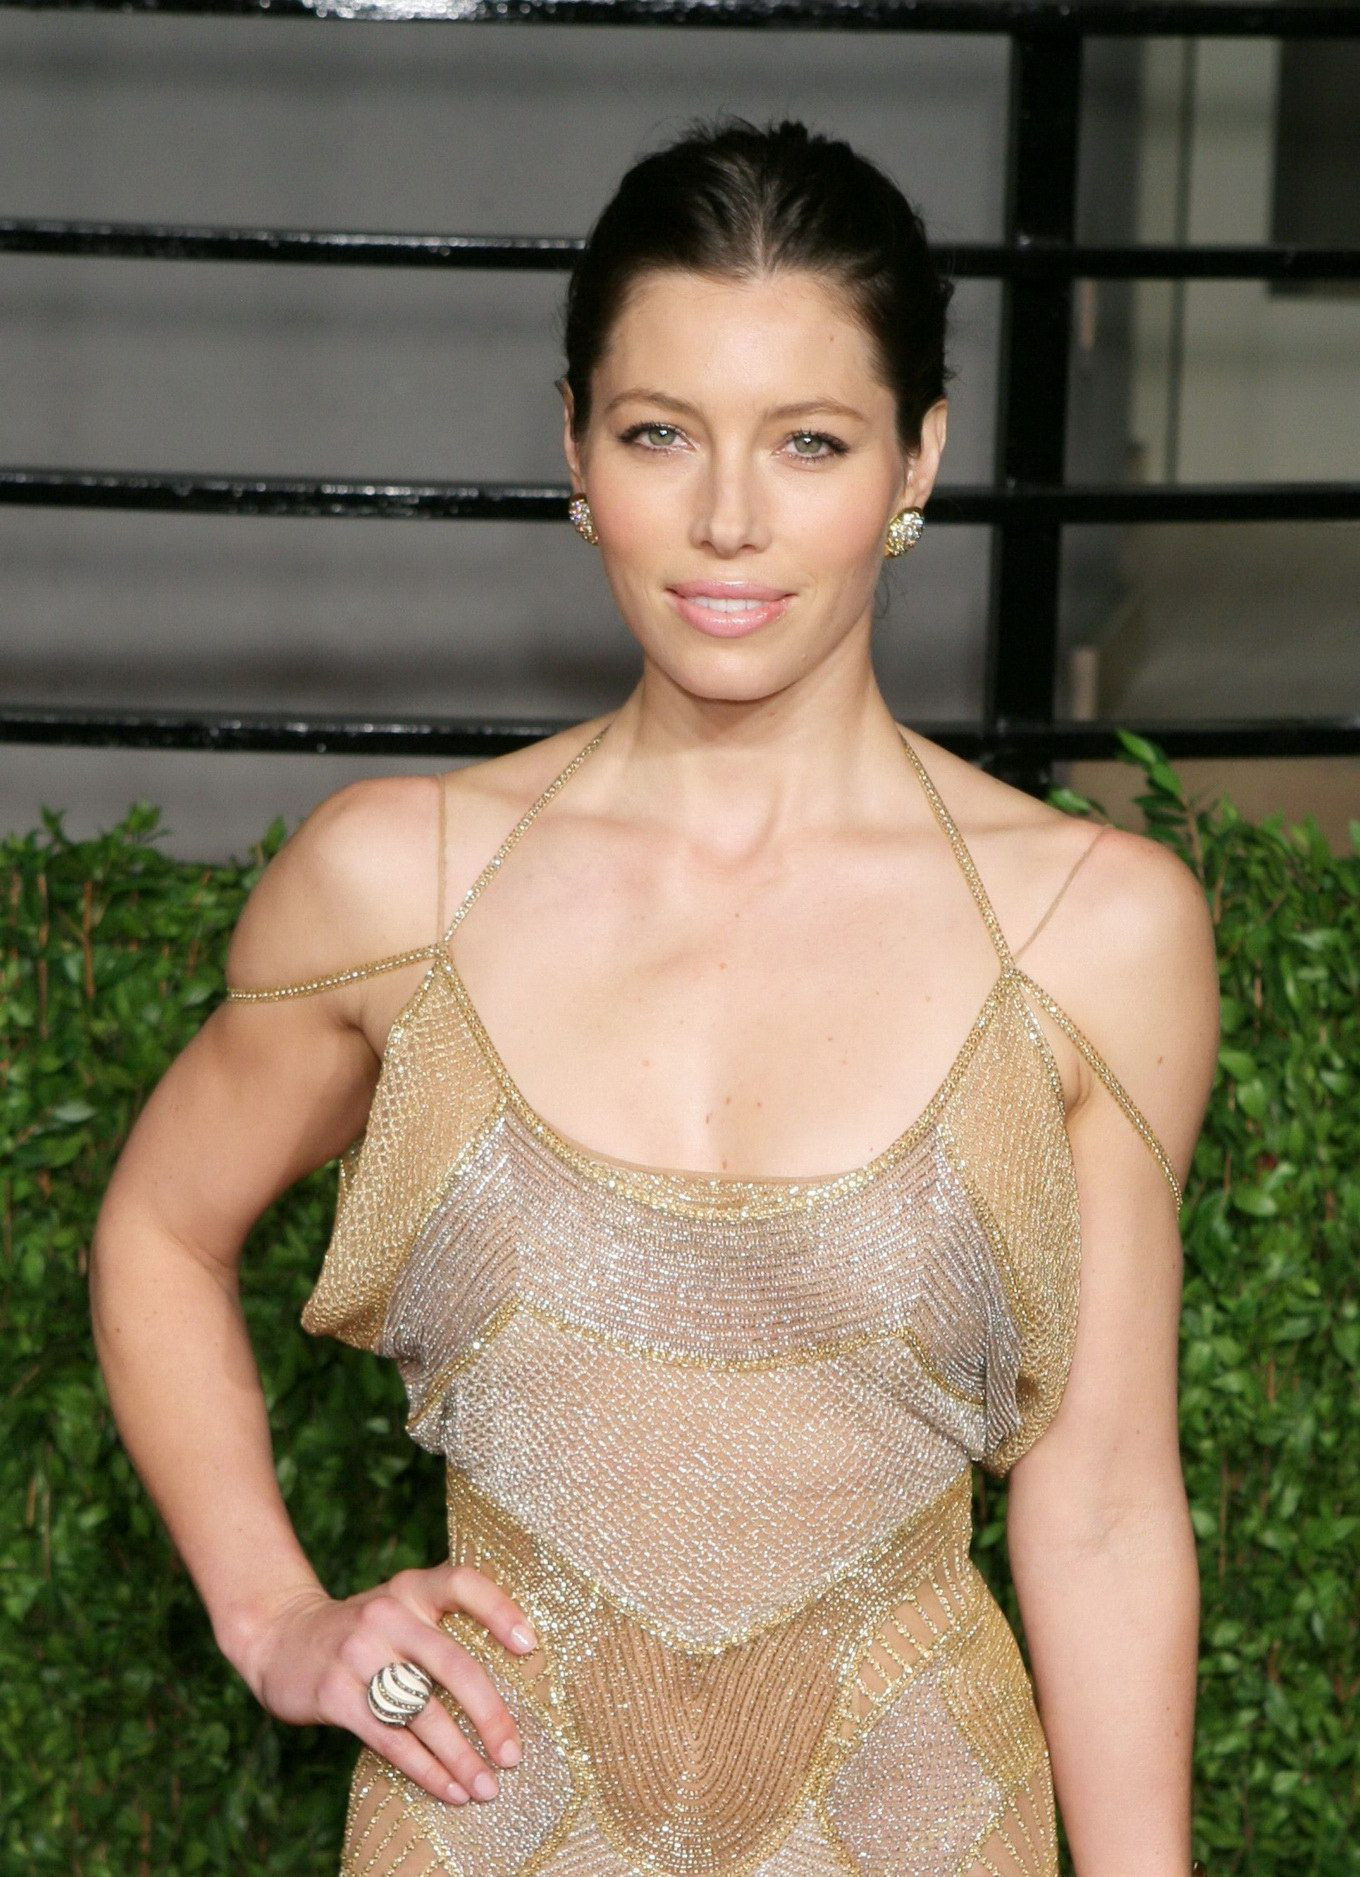 Jessica Biel shows off her curvy body wearing tight maxi dress at the ...: www.celeb-for-free.com/pics/celeb3064/jessica_biel_sex_freeones.html